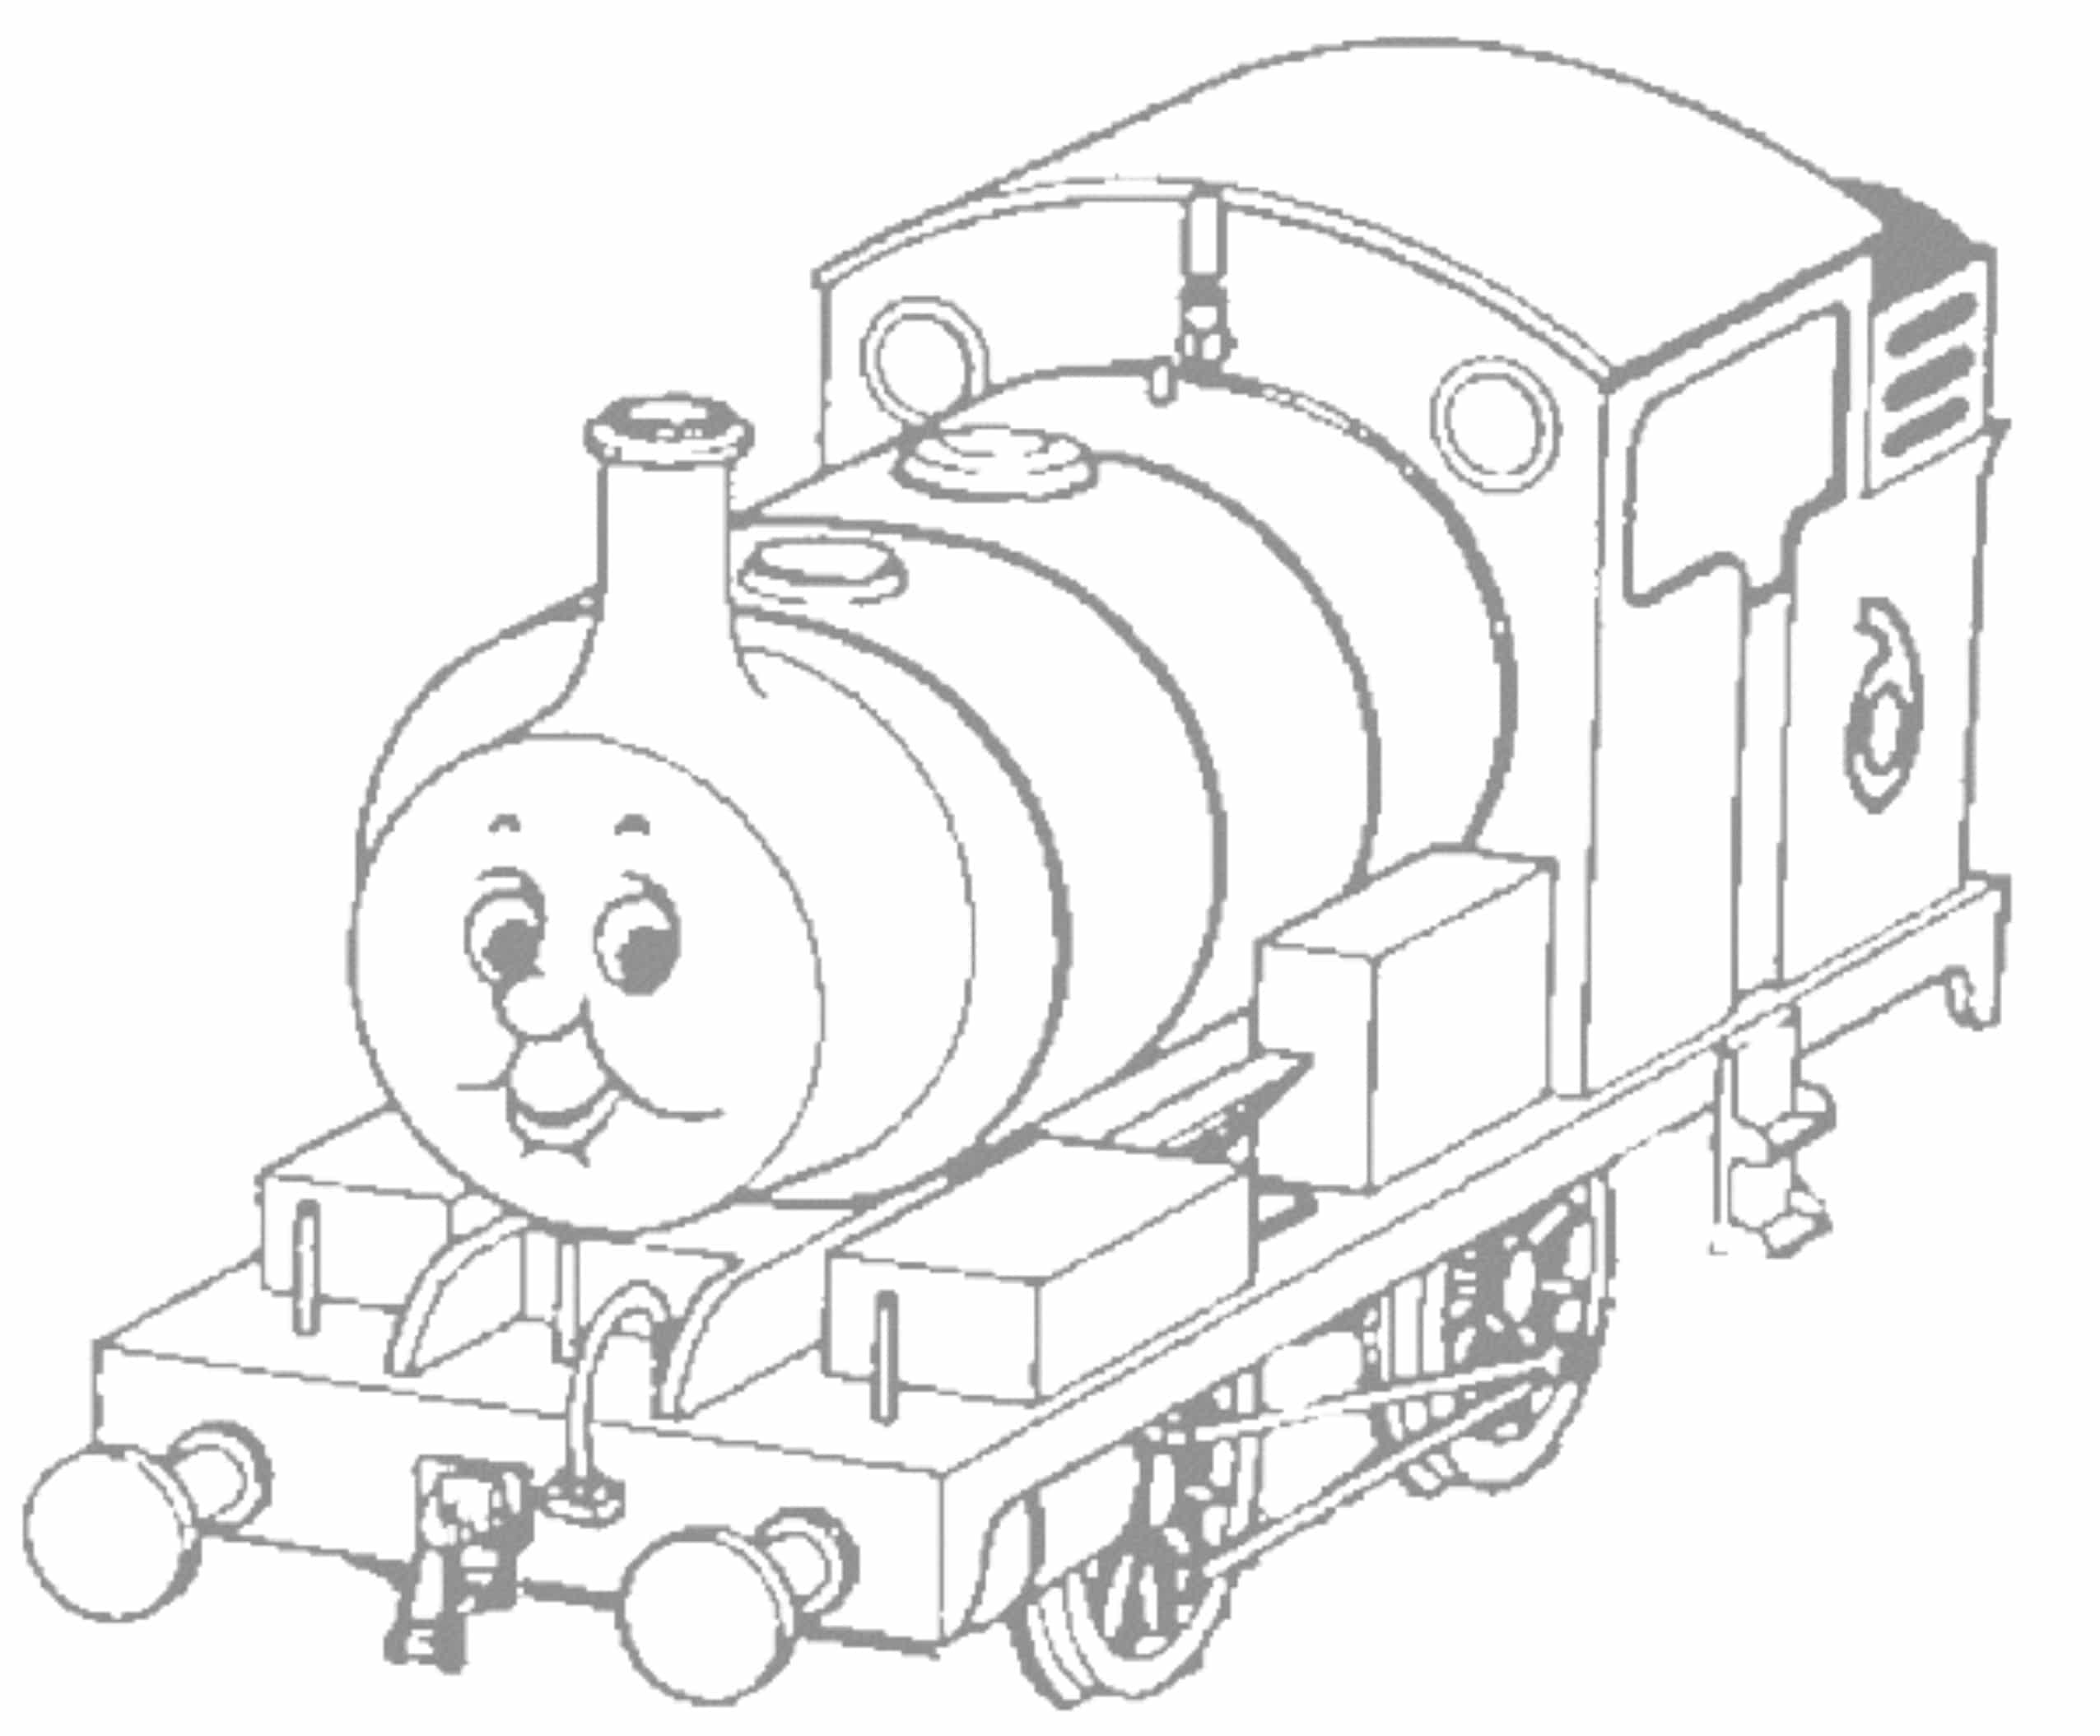 thomas the train color pages free coloring pages printable pictures to color kids thomas pages train color the